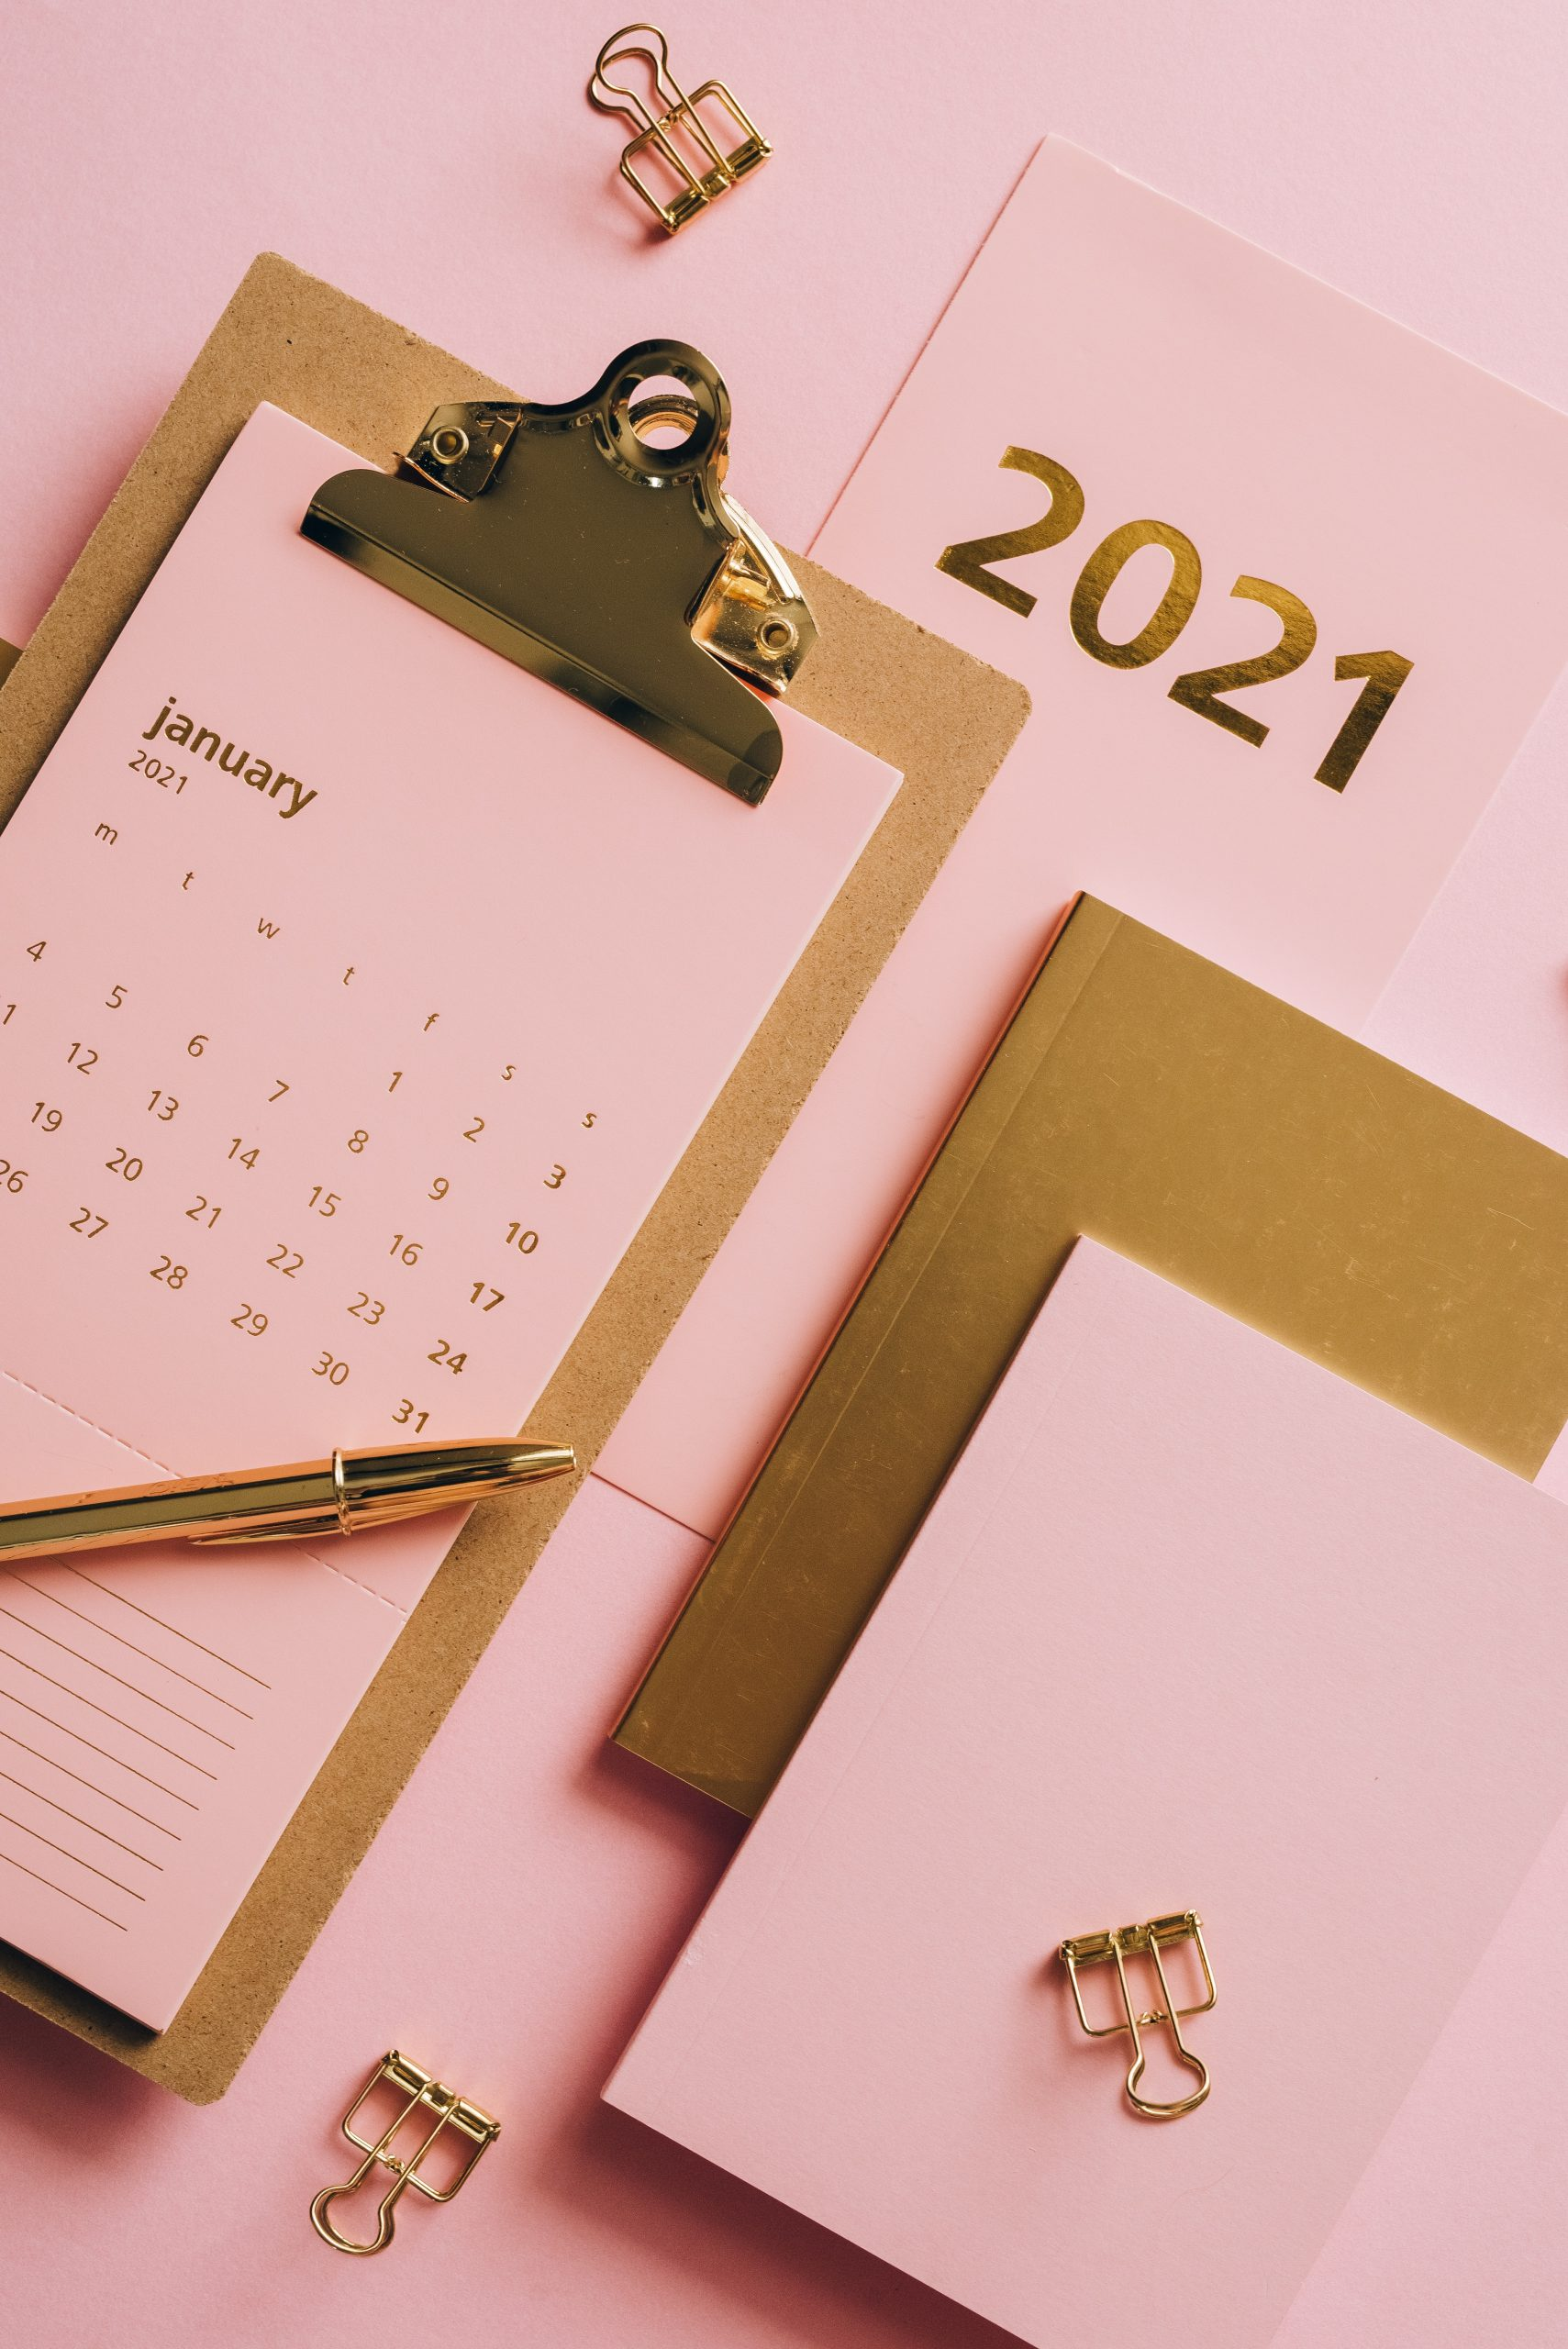 Is Your Business Ready For The Next 12 Months?